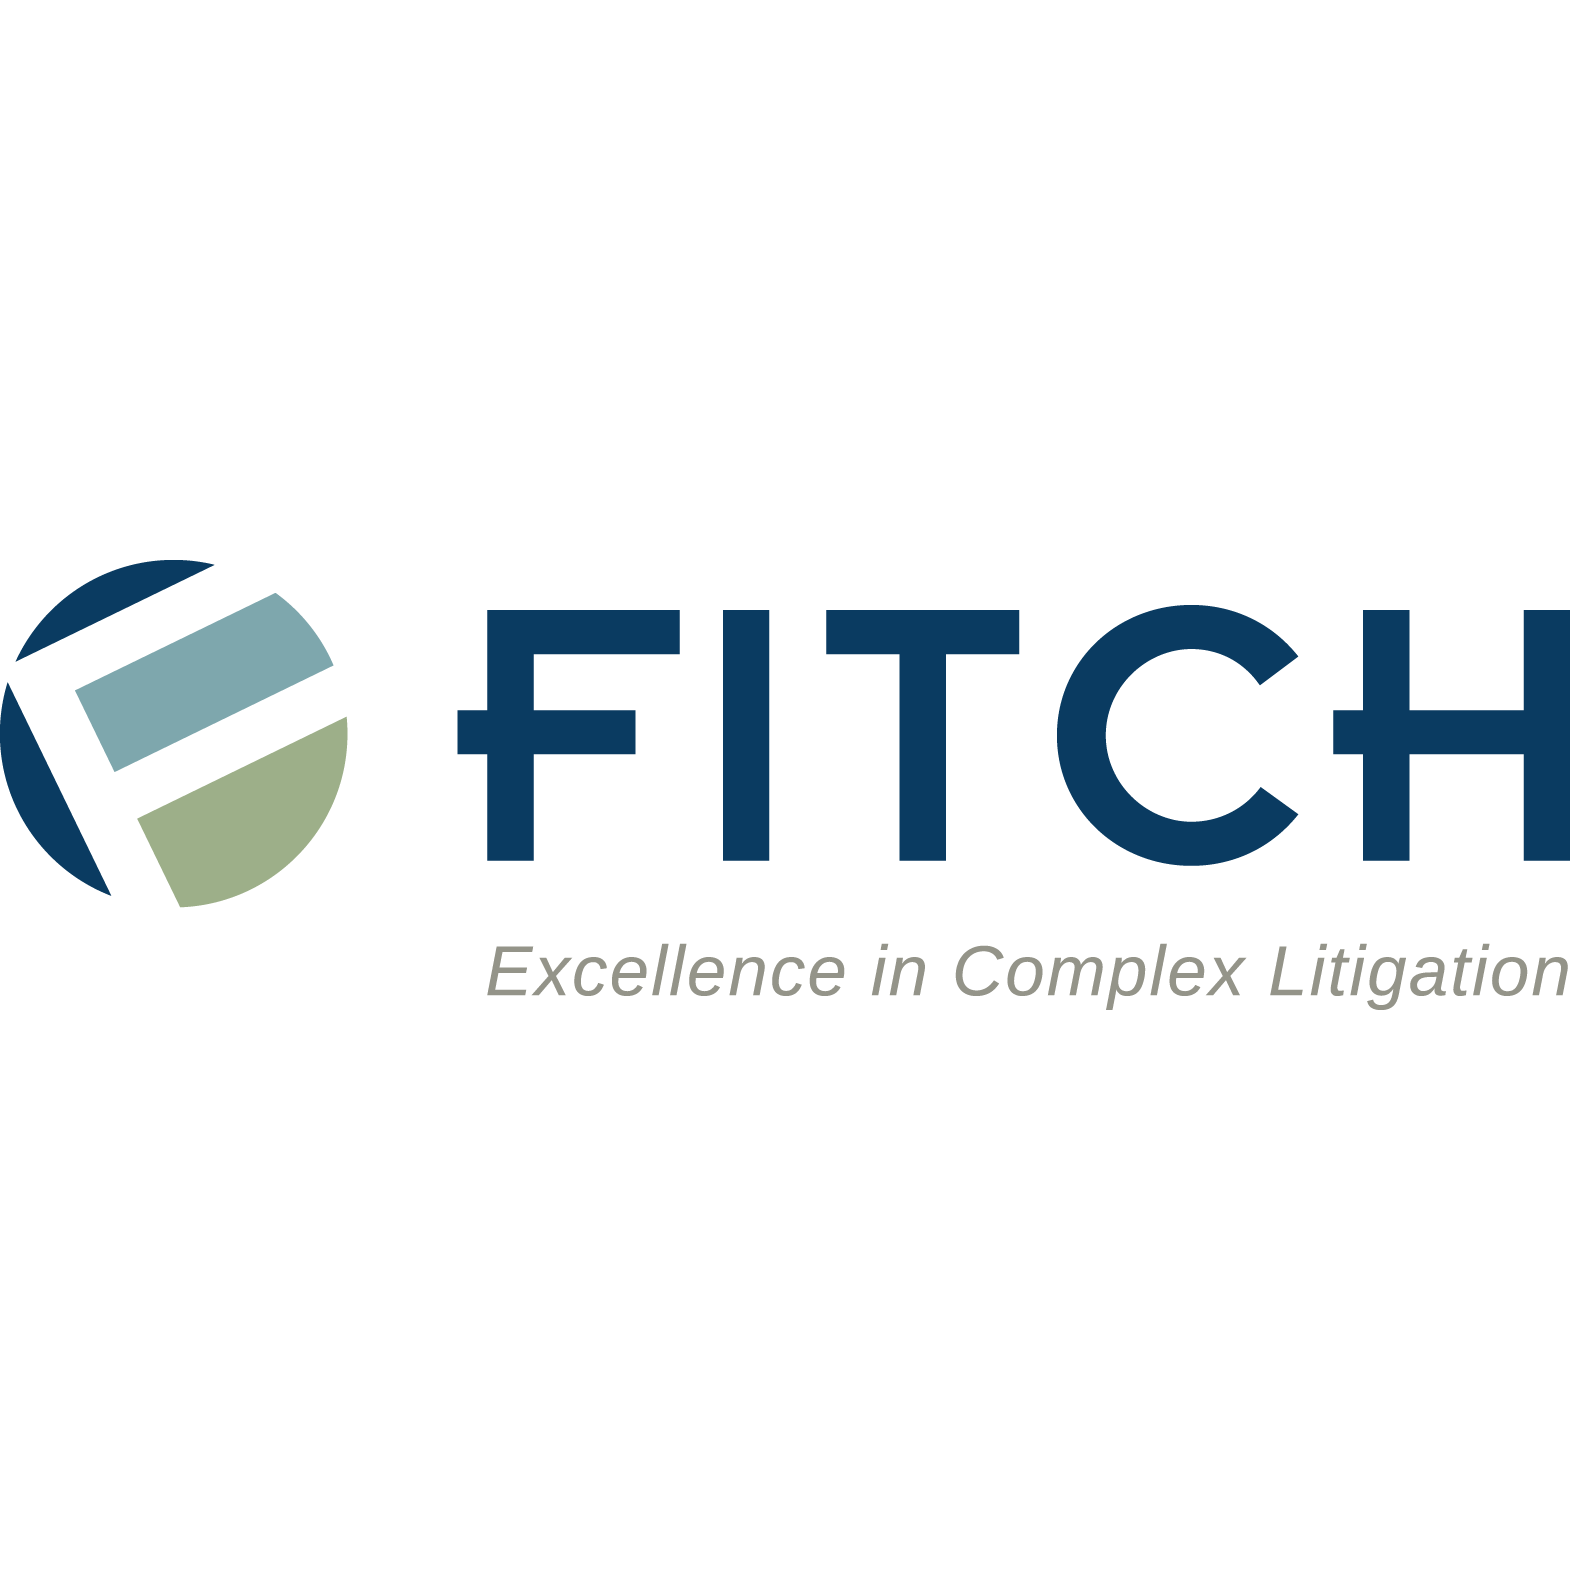 Fitch Law Partners LLP - Providence, RI - Attorneys